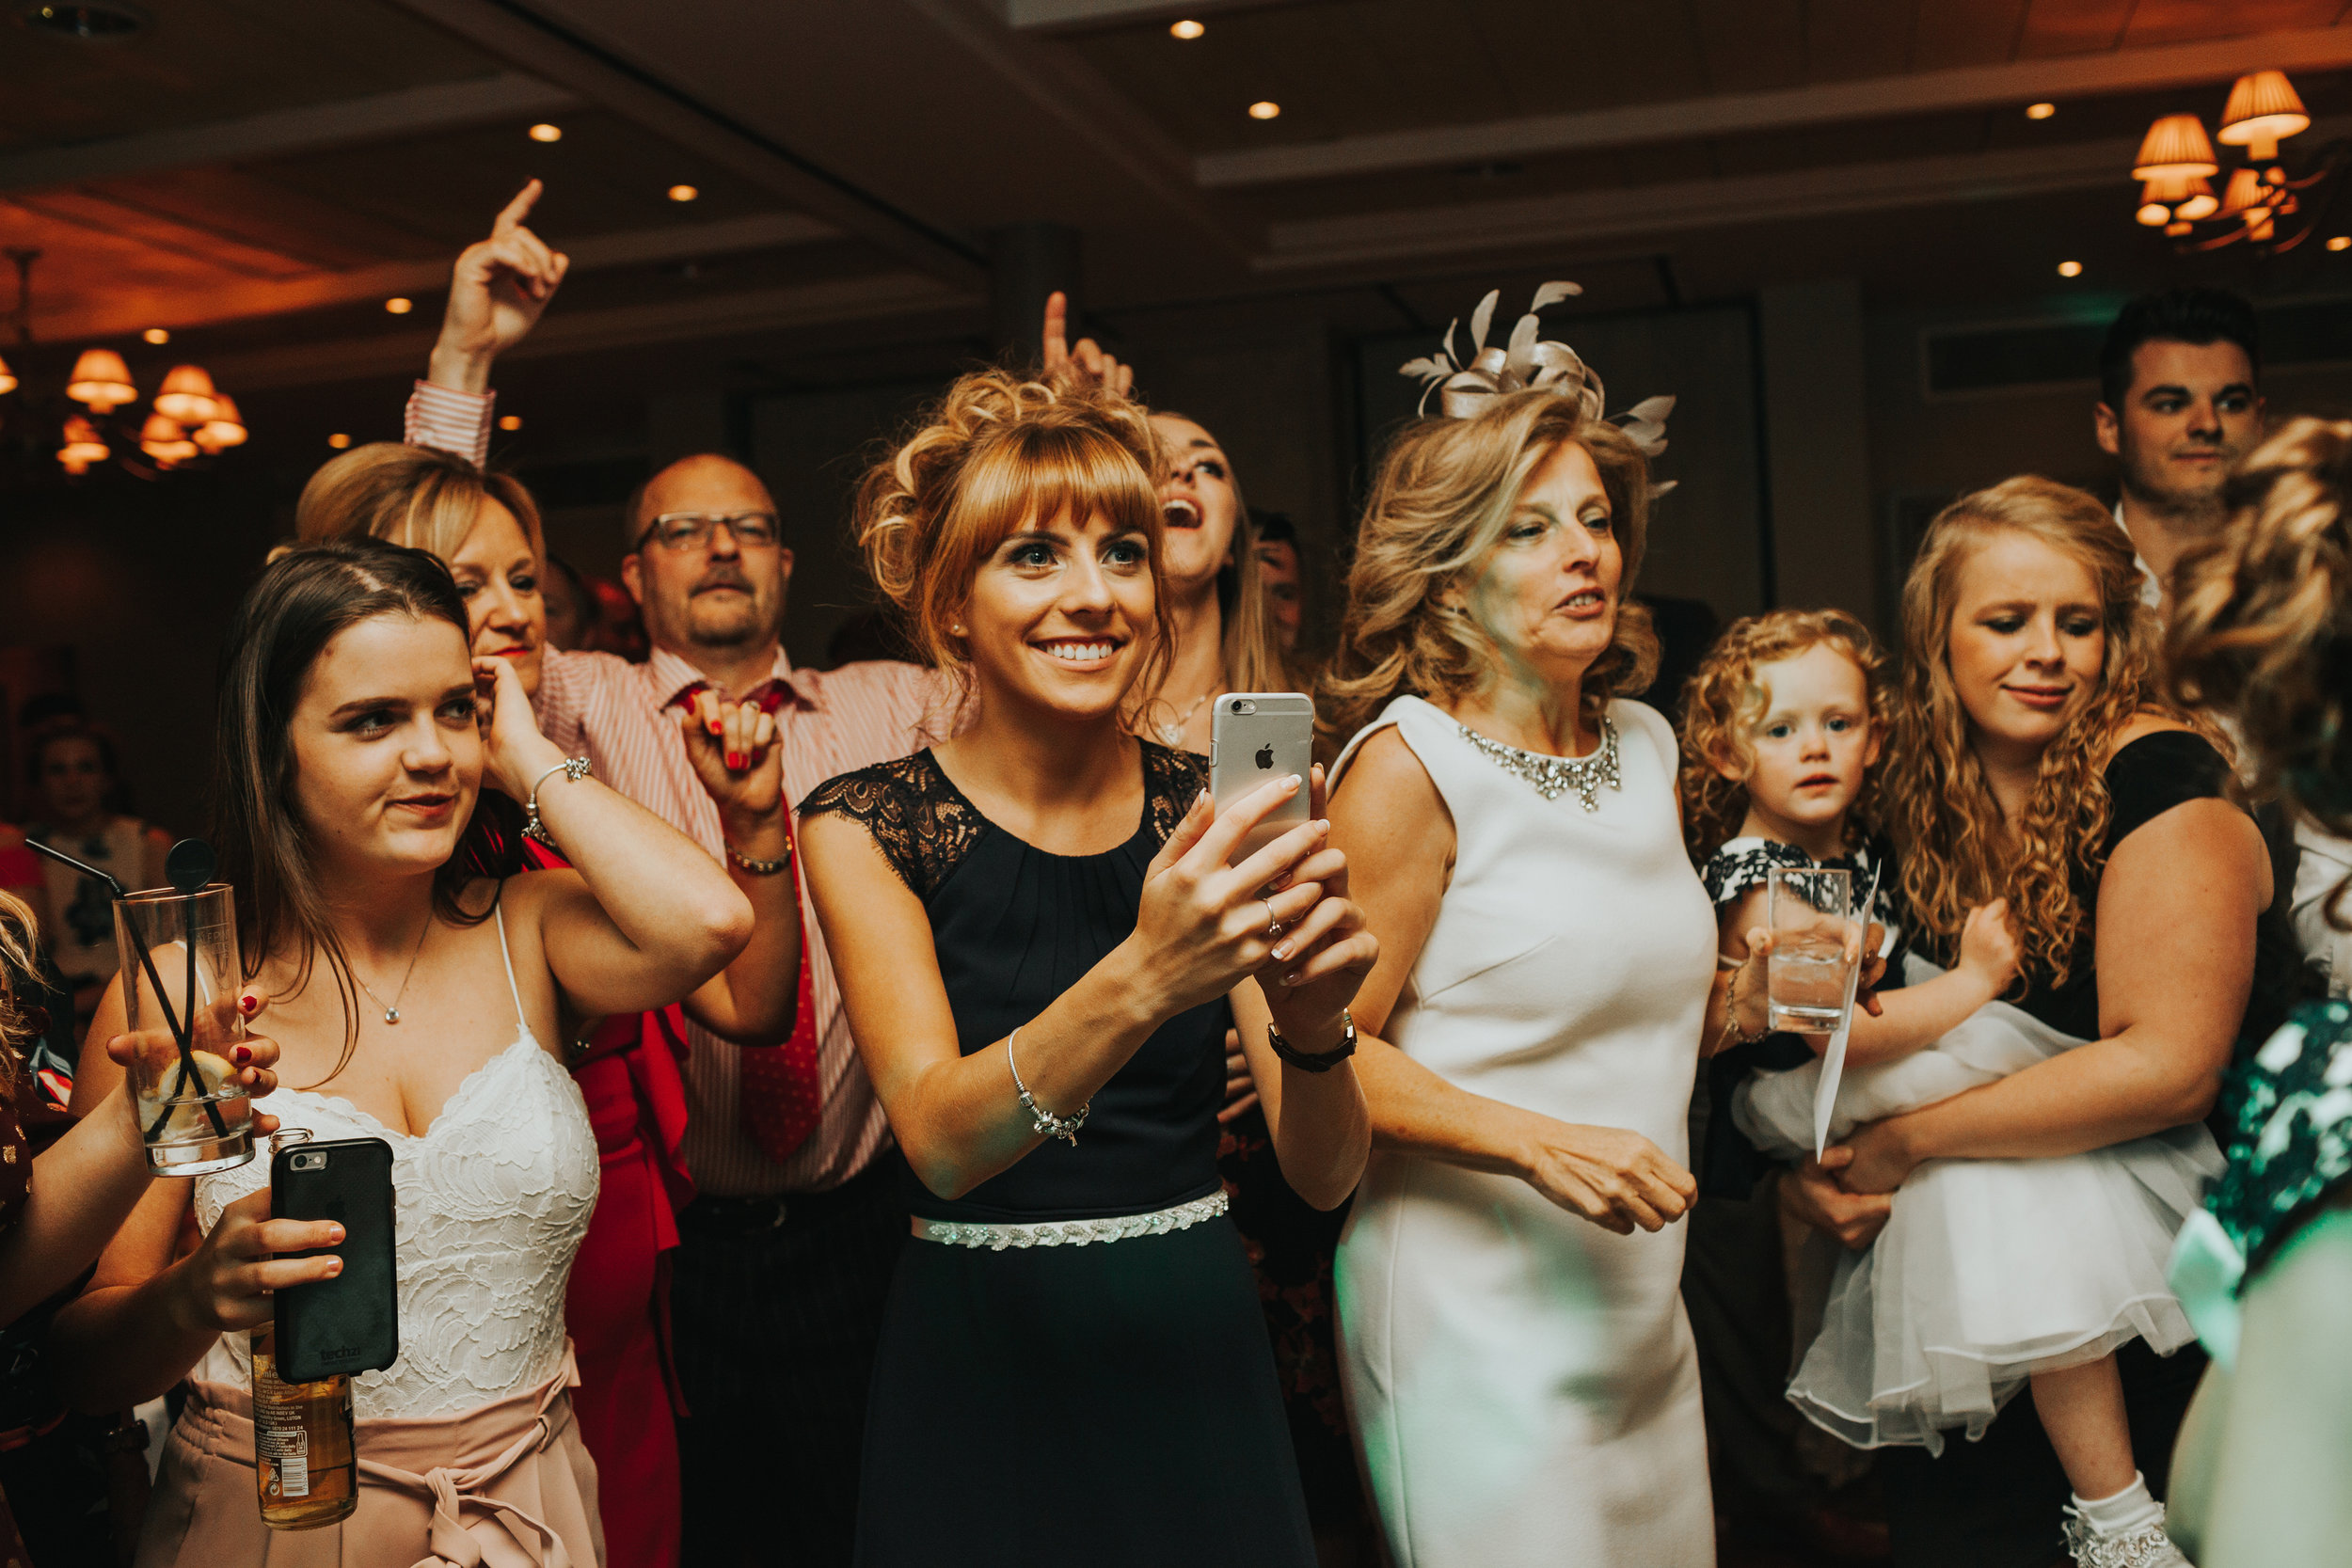 The wedding guests go wild!